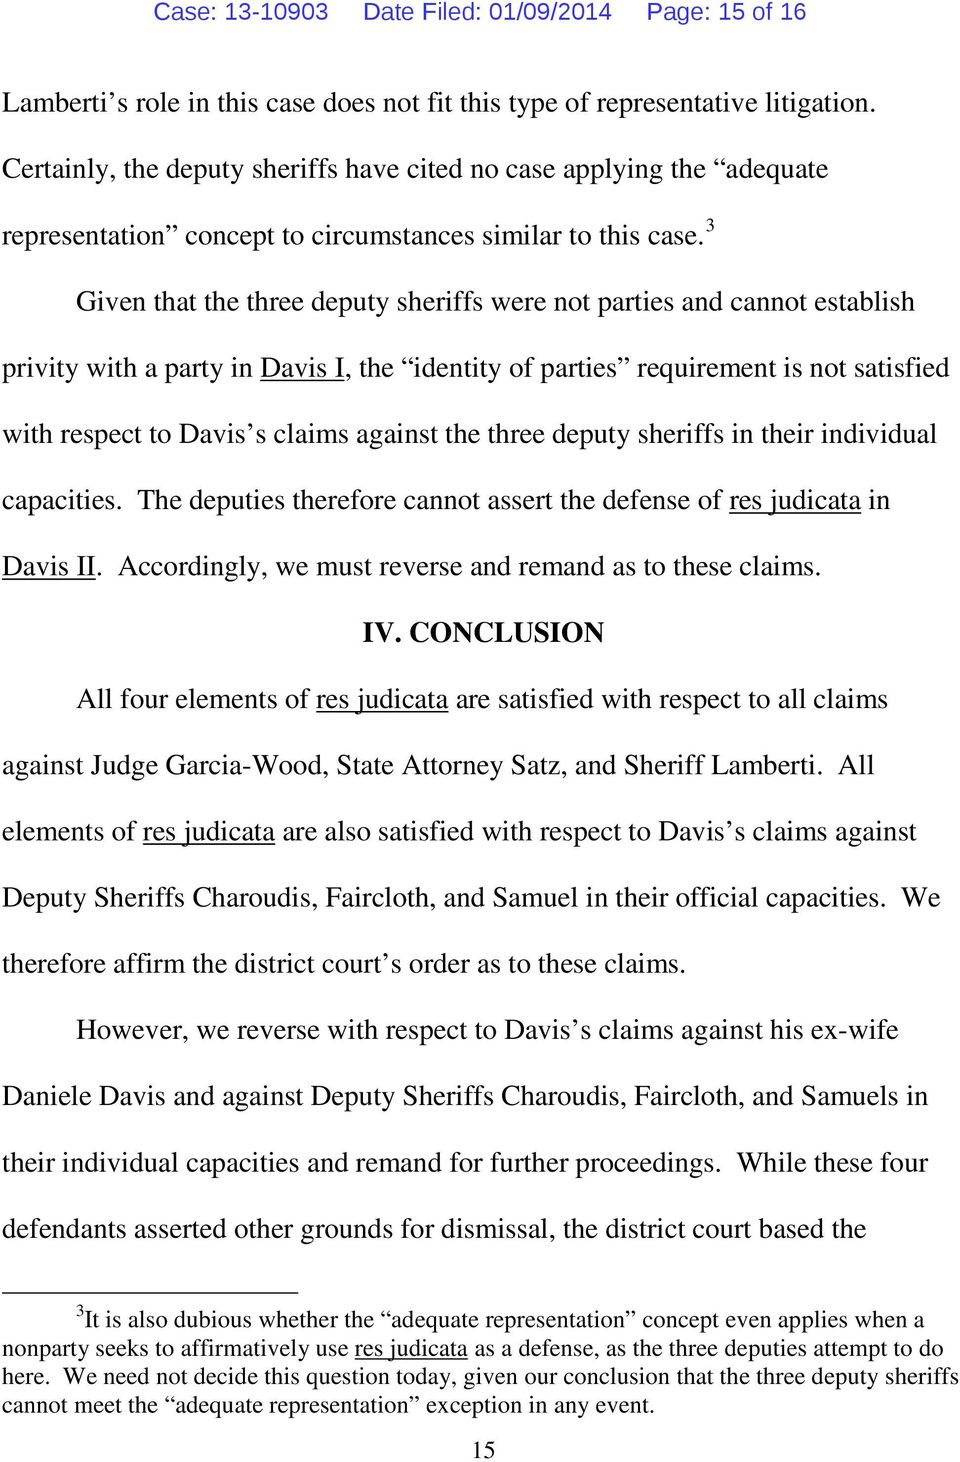 3 Given that the three deputy sheriffs were not parties and cannot establish privity with a party in Davis I, the identity of parties requirement is not satisfied with respect to Davis s claims